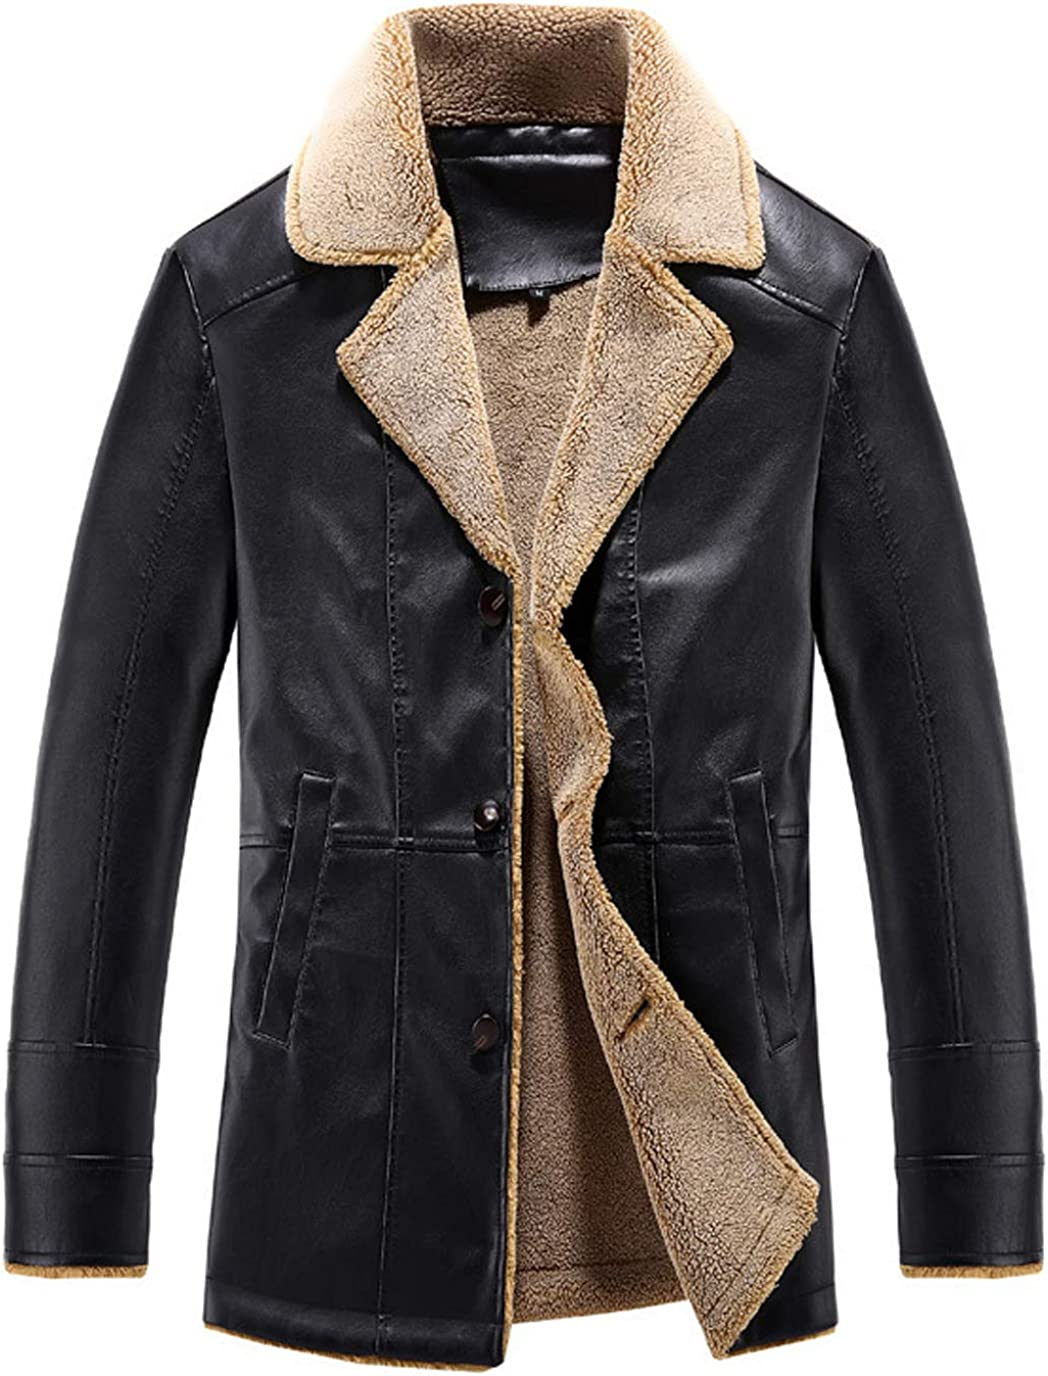 chouyatou Mens Classical Lapel Collar Three Button Sherpa Lined Faux Leather Suit Jacket